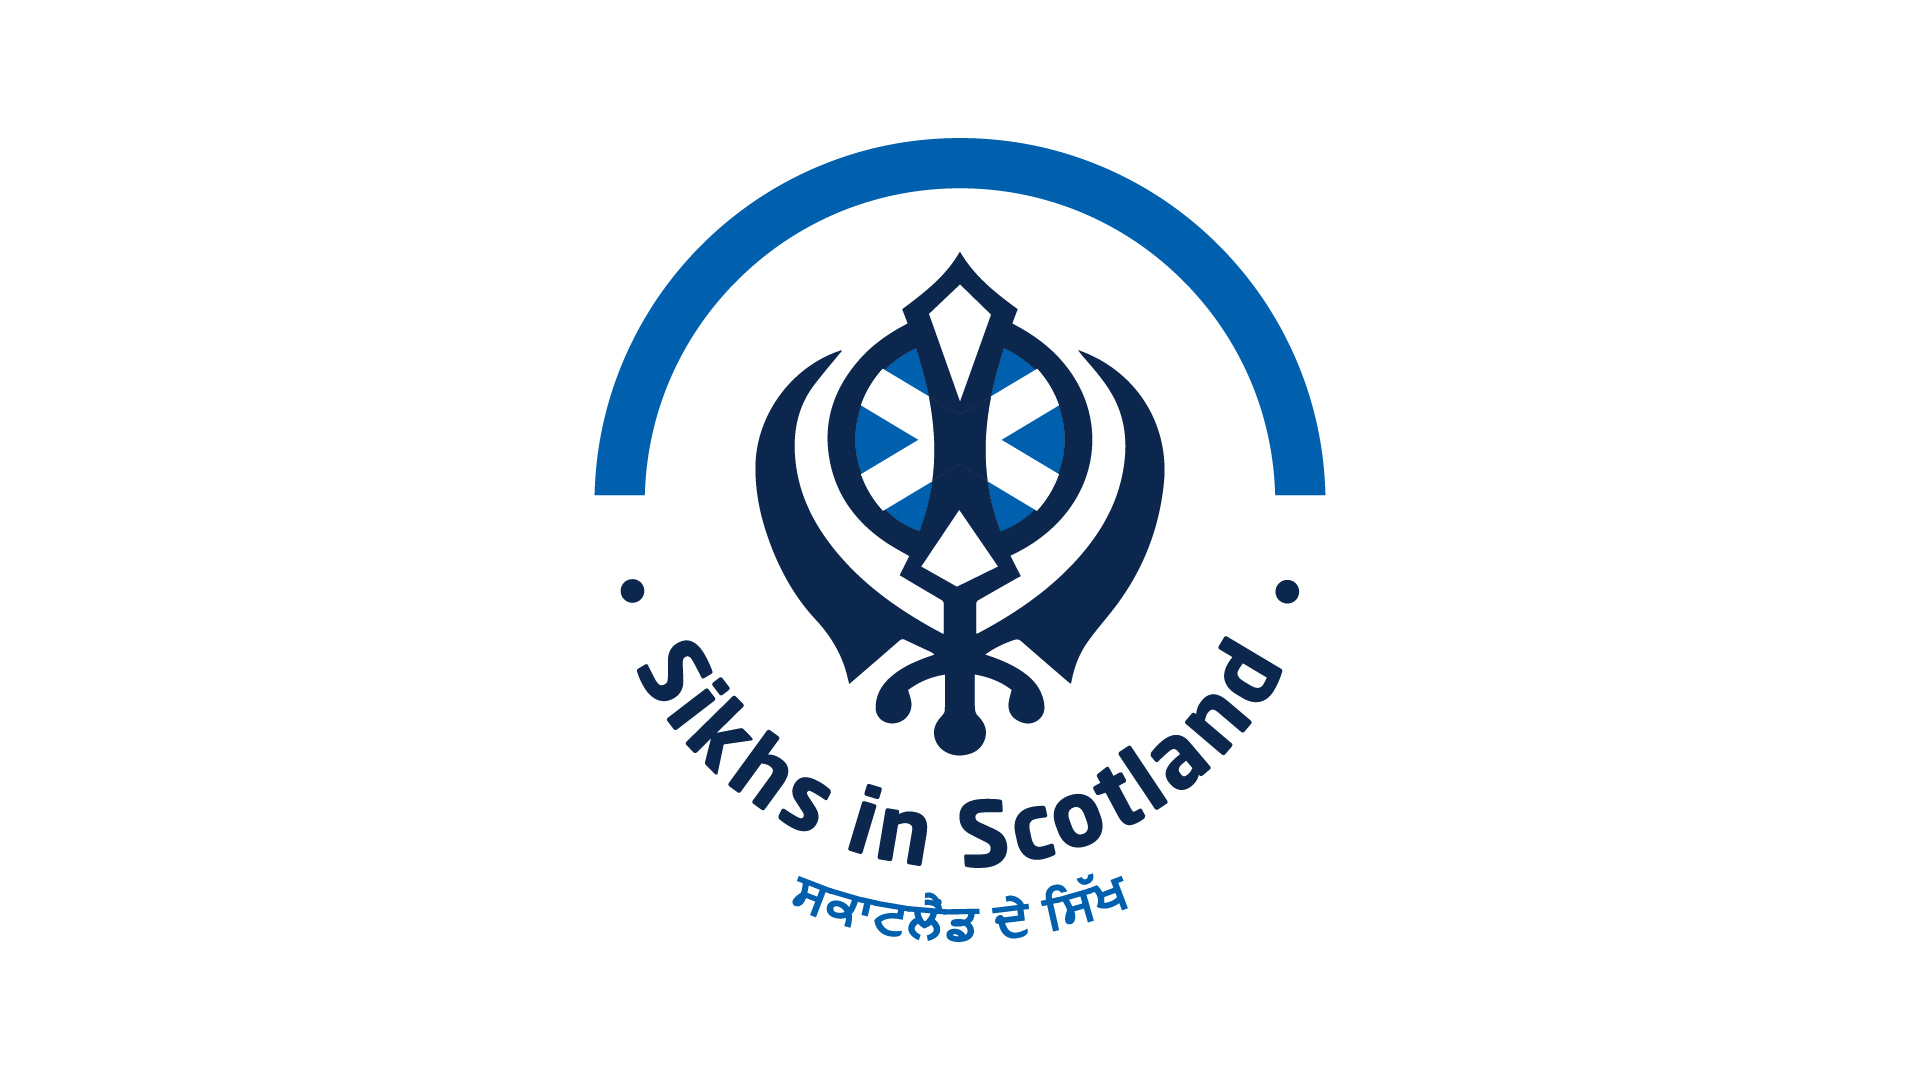 Sikhs in Scotland